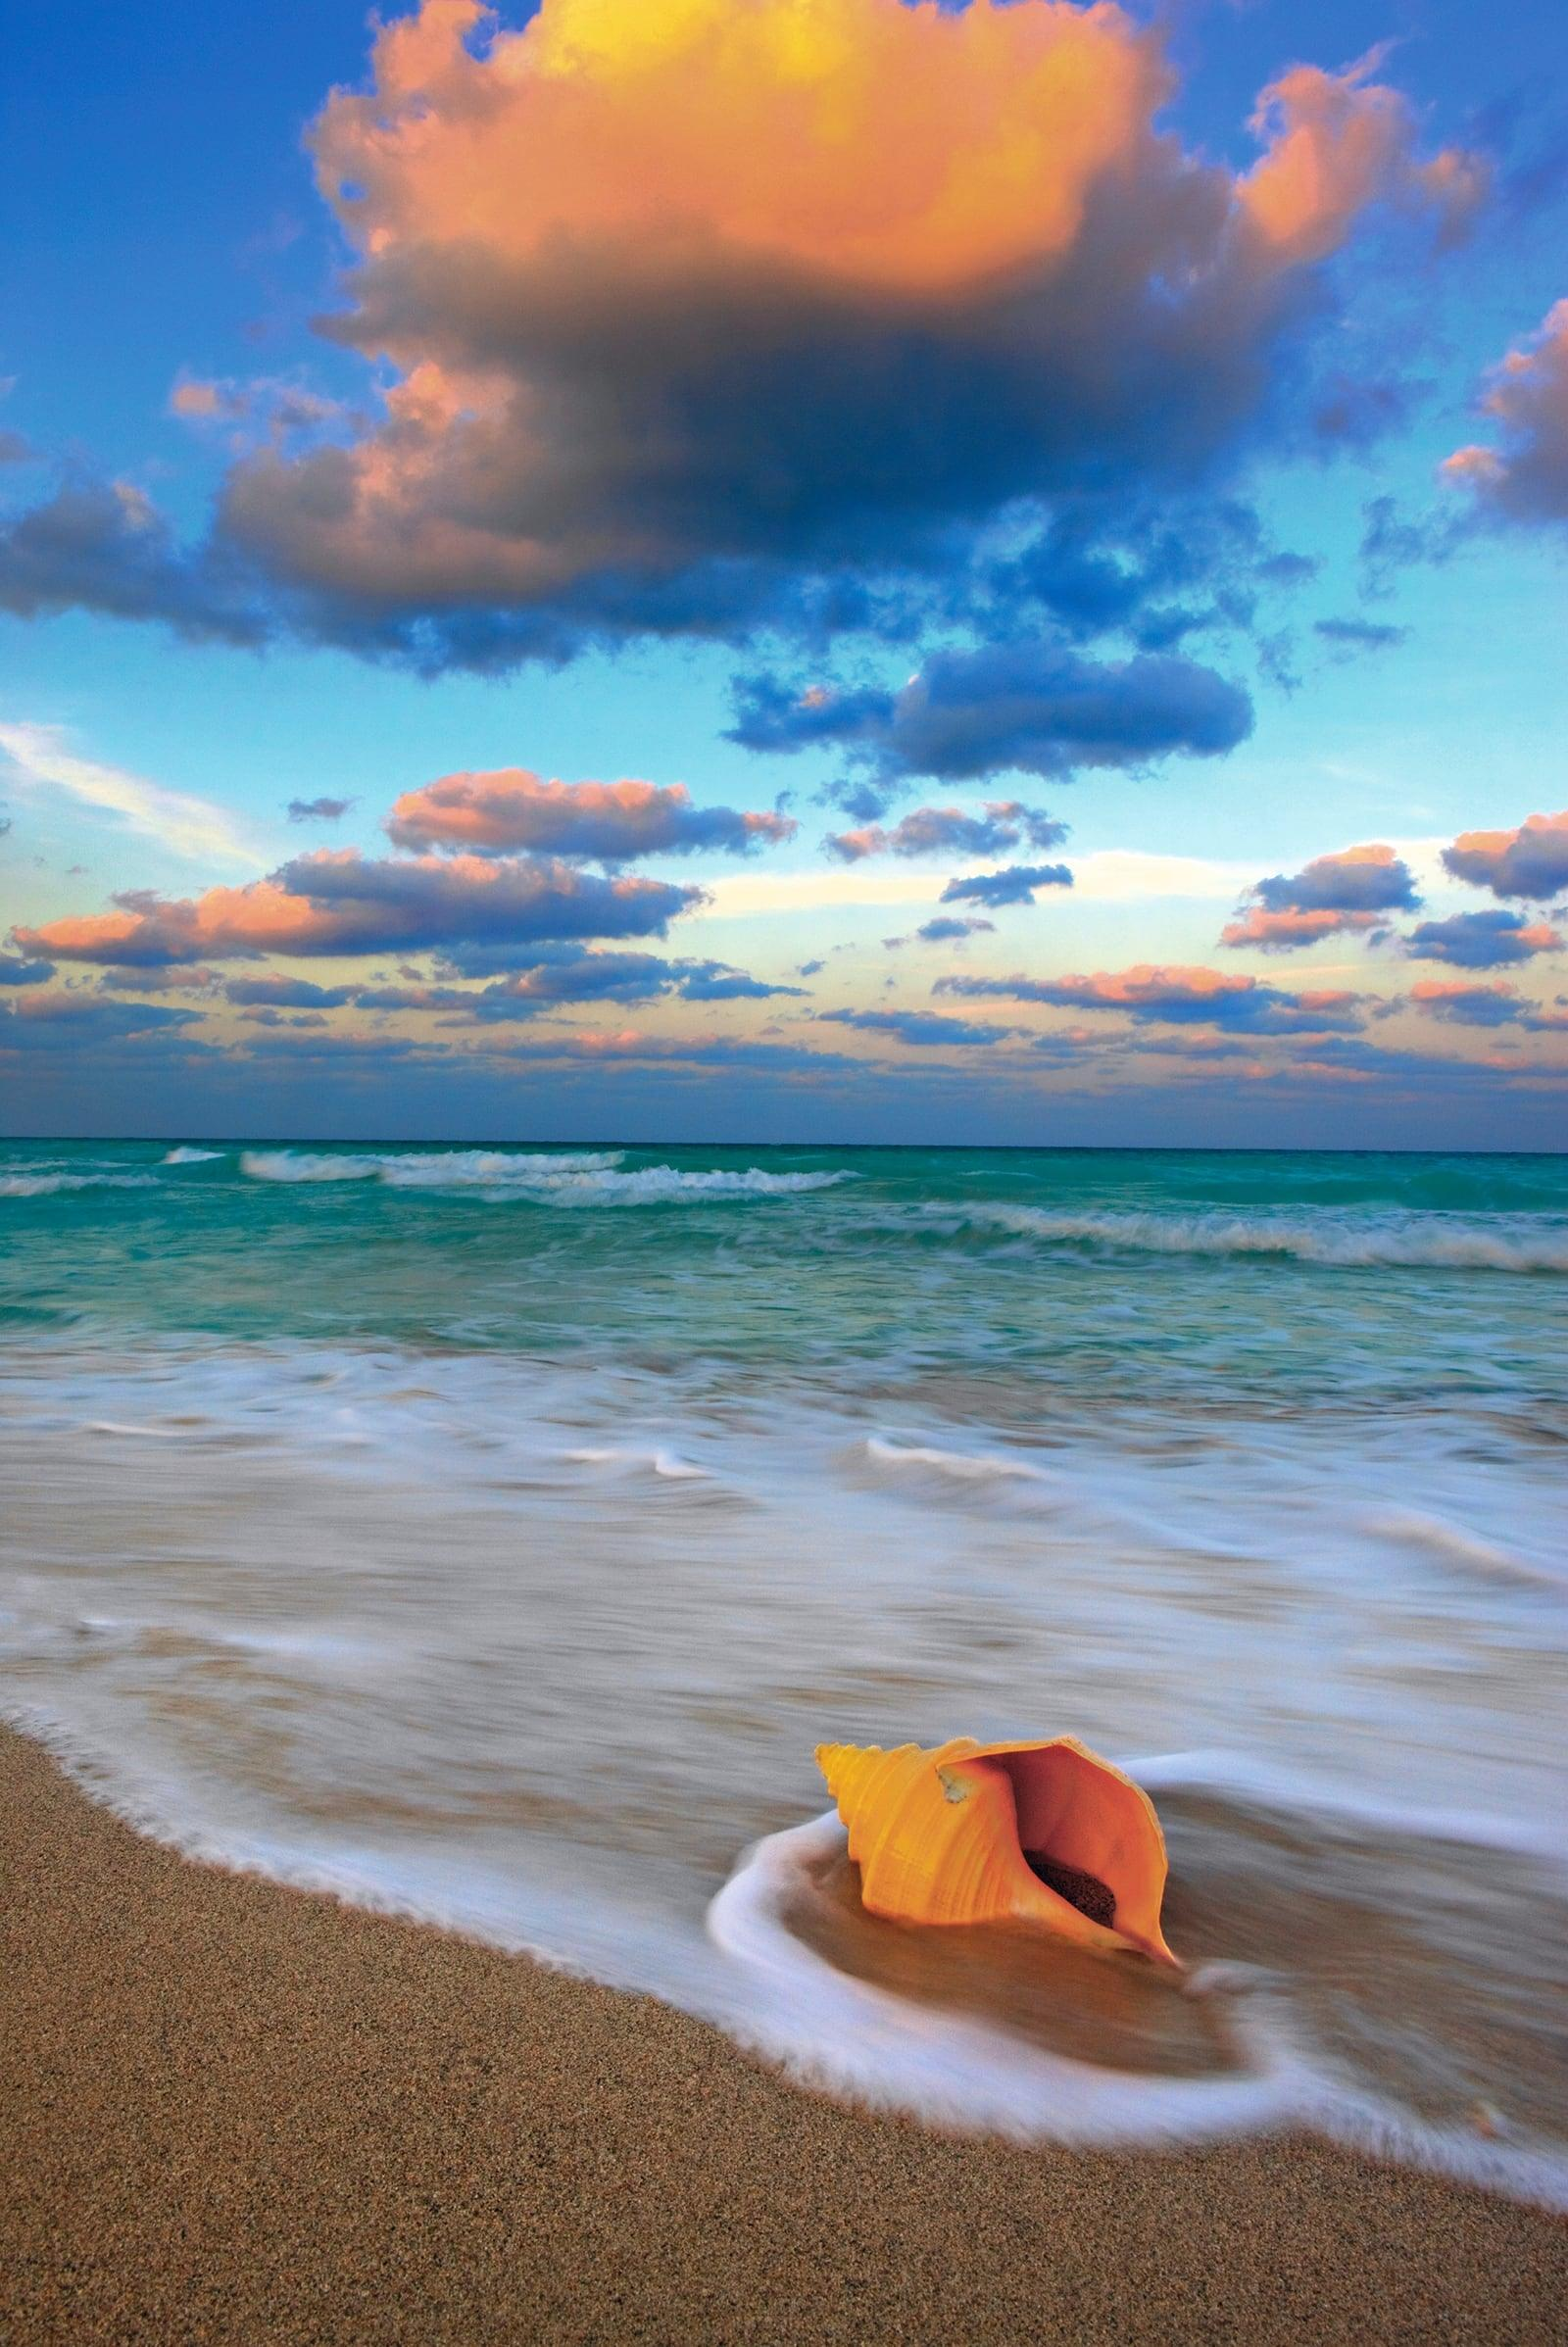 Waves washing onto a conch shell on the sands of South Beach Miami on a cloudy day